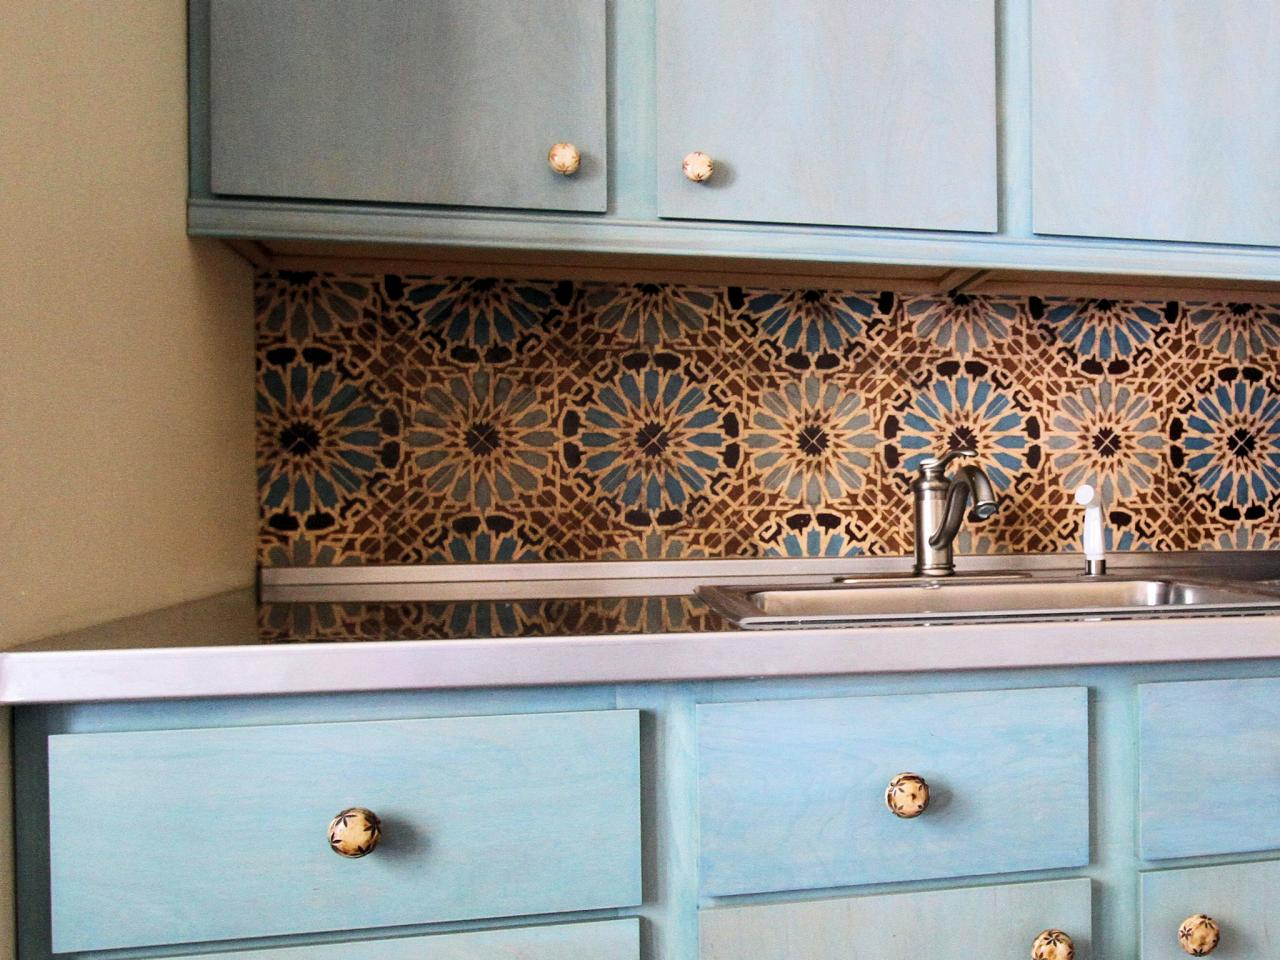 Kitchen tile backsplash ideas pictures tips from hgtv hgtv kitchen tile backsplash ideas dailygadgetfo Image collections